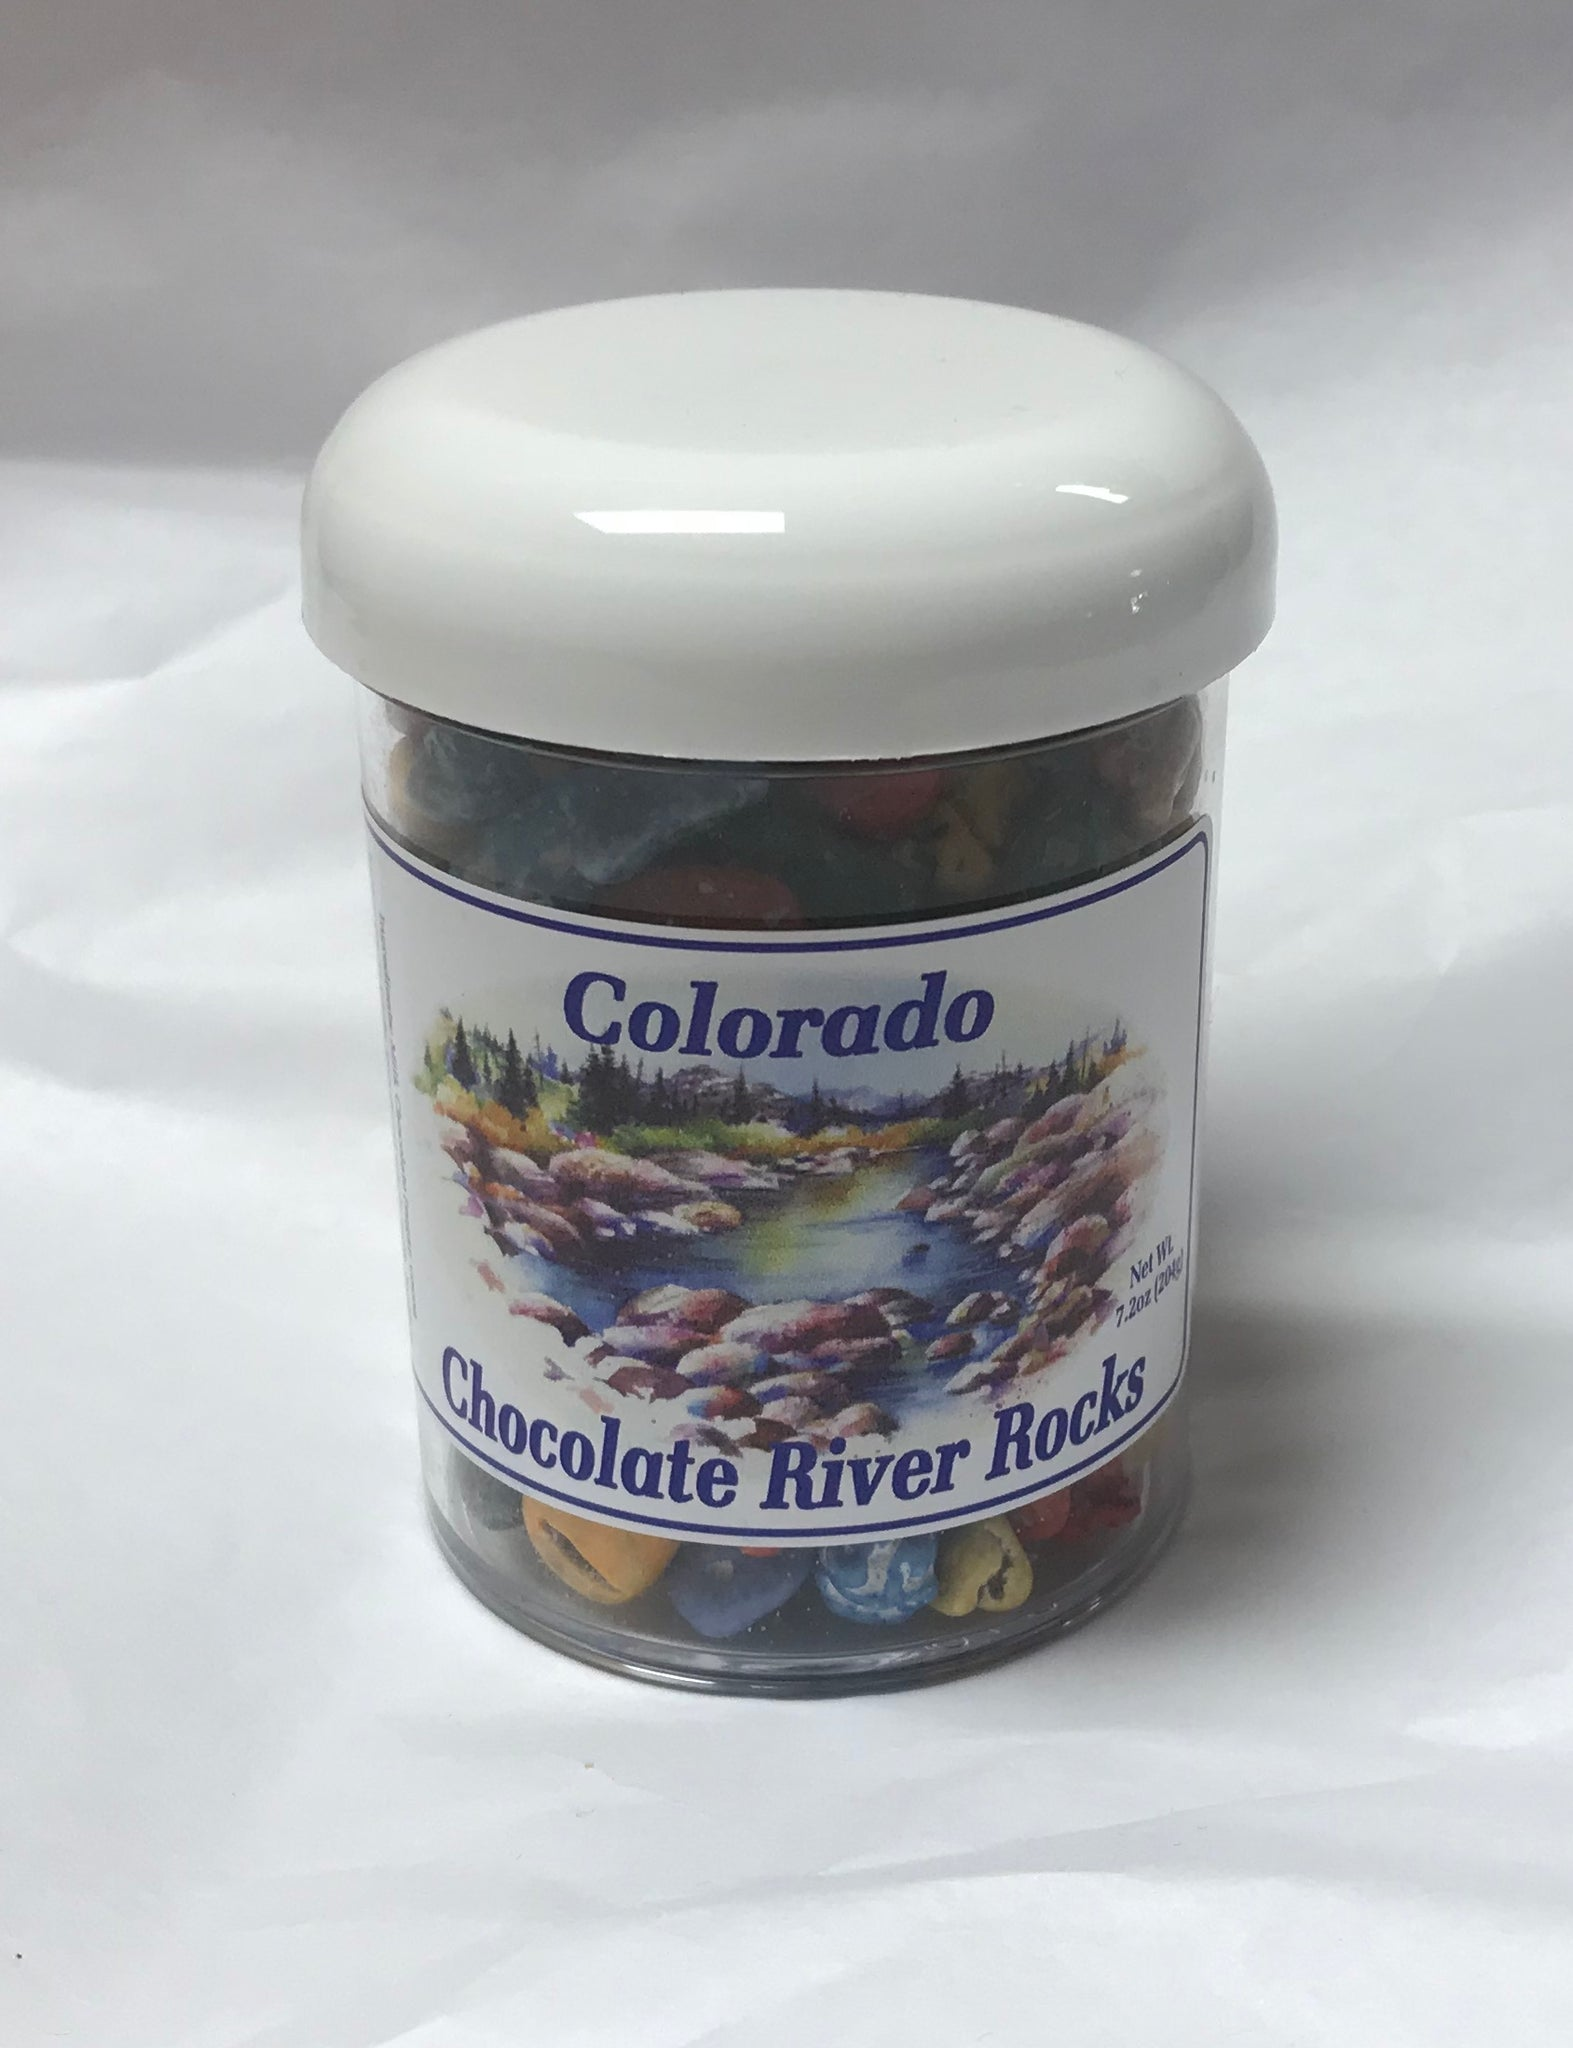 Colorado Chocolate River Rocks